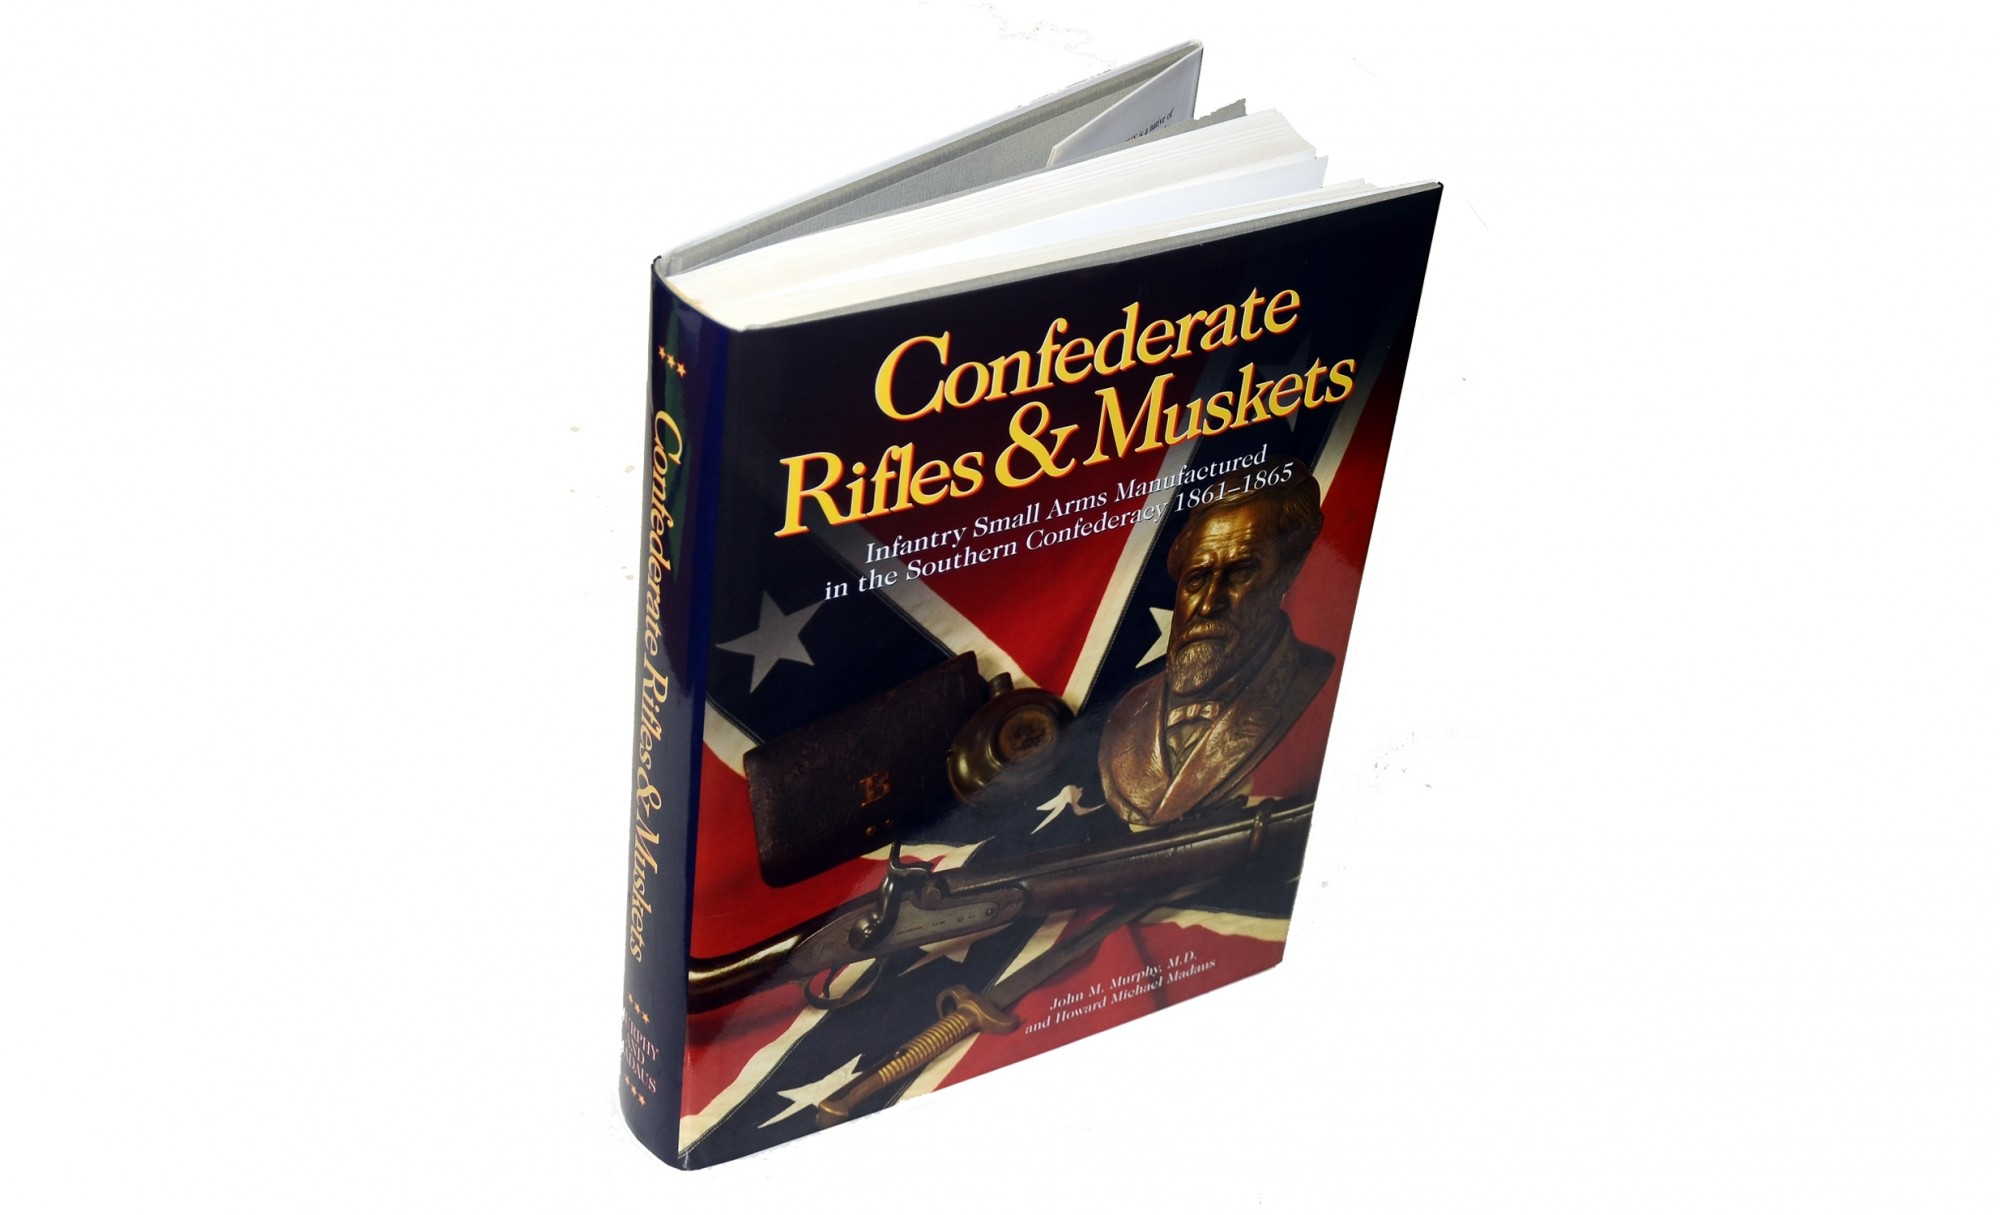 <I>CONFEDERATE RIFLES AND MUSKETS</I> REFERENCE BOOK